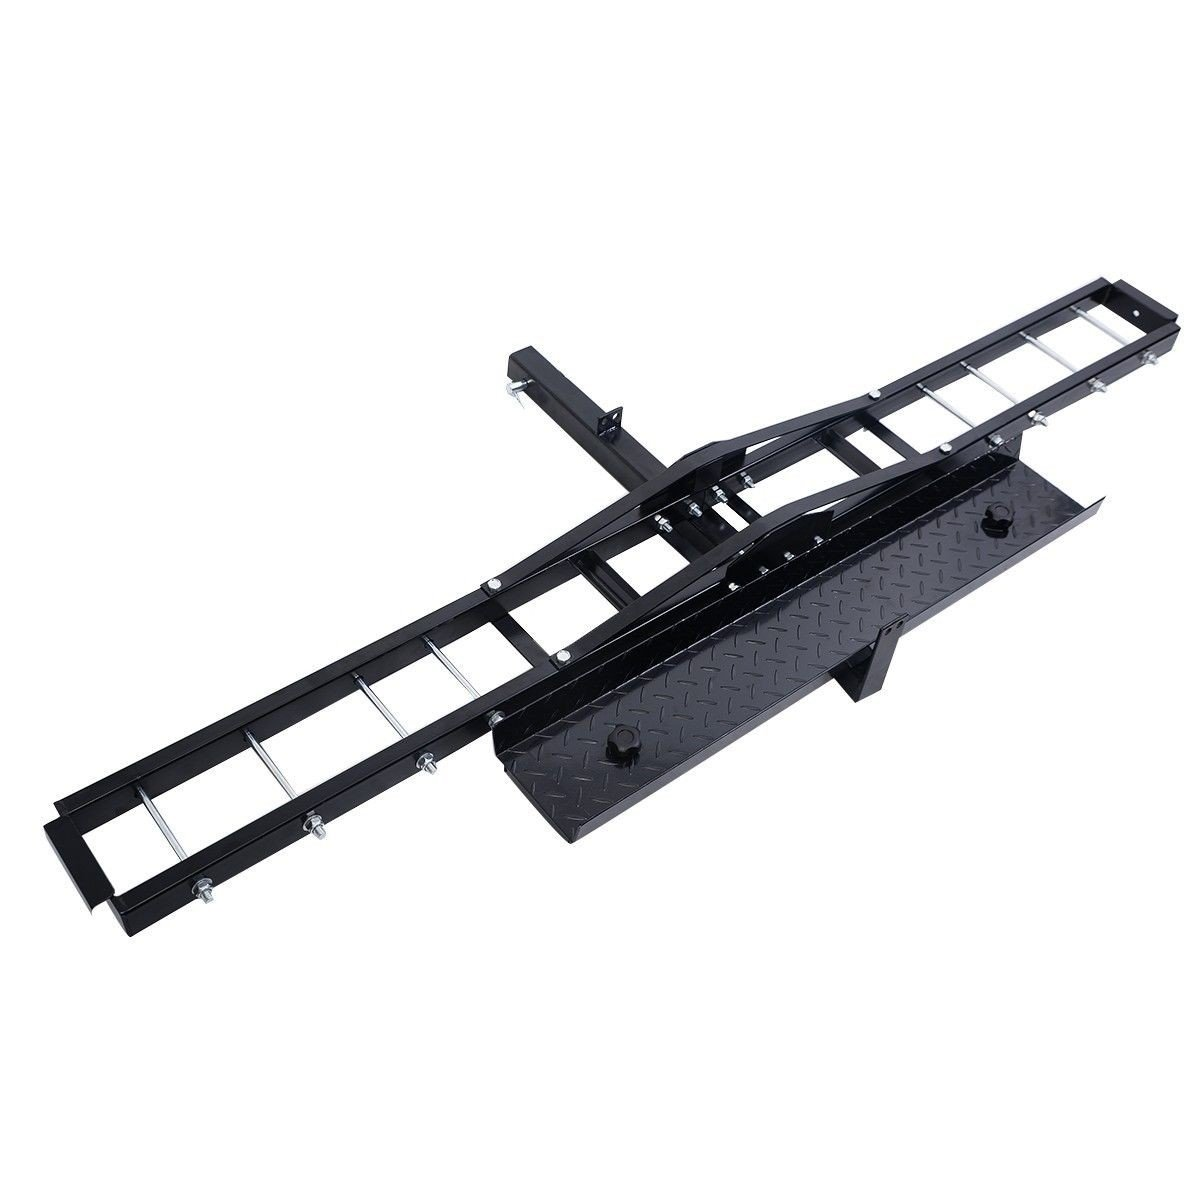 king77777 Steel Motorcycle Scooter Dirtbike Carrier Hauler Hitch Mount Rack Ramp Anti Tilt New Useful by king77777